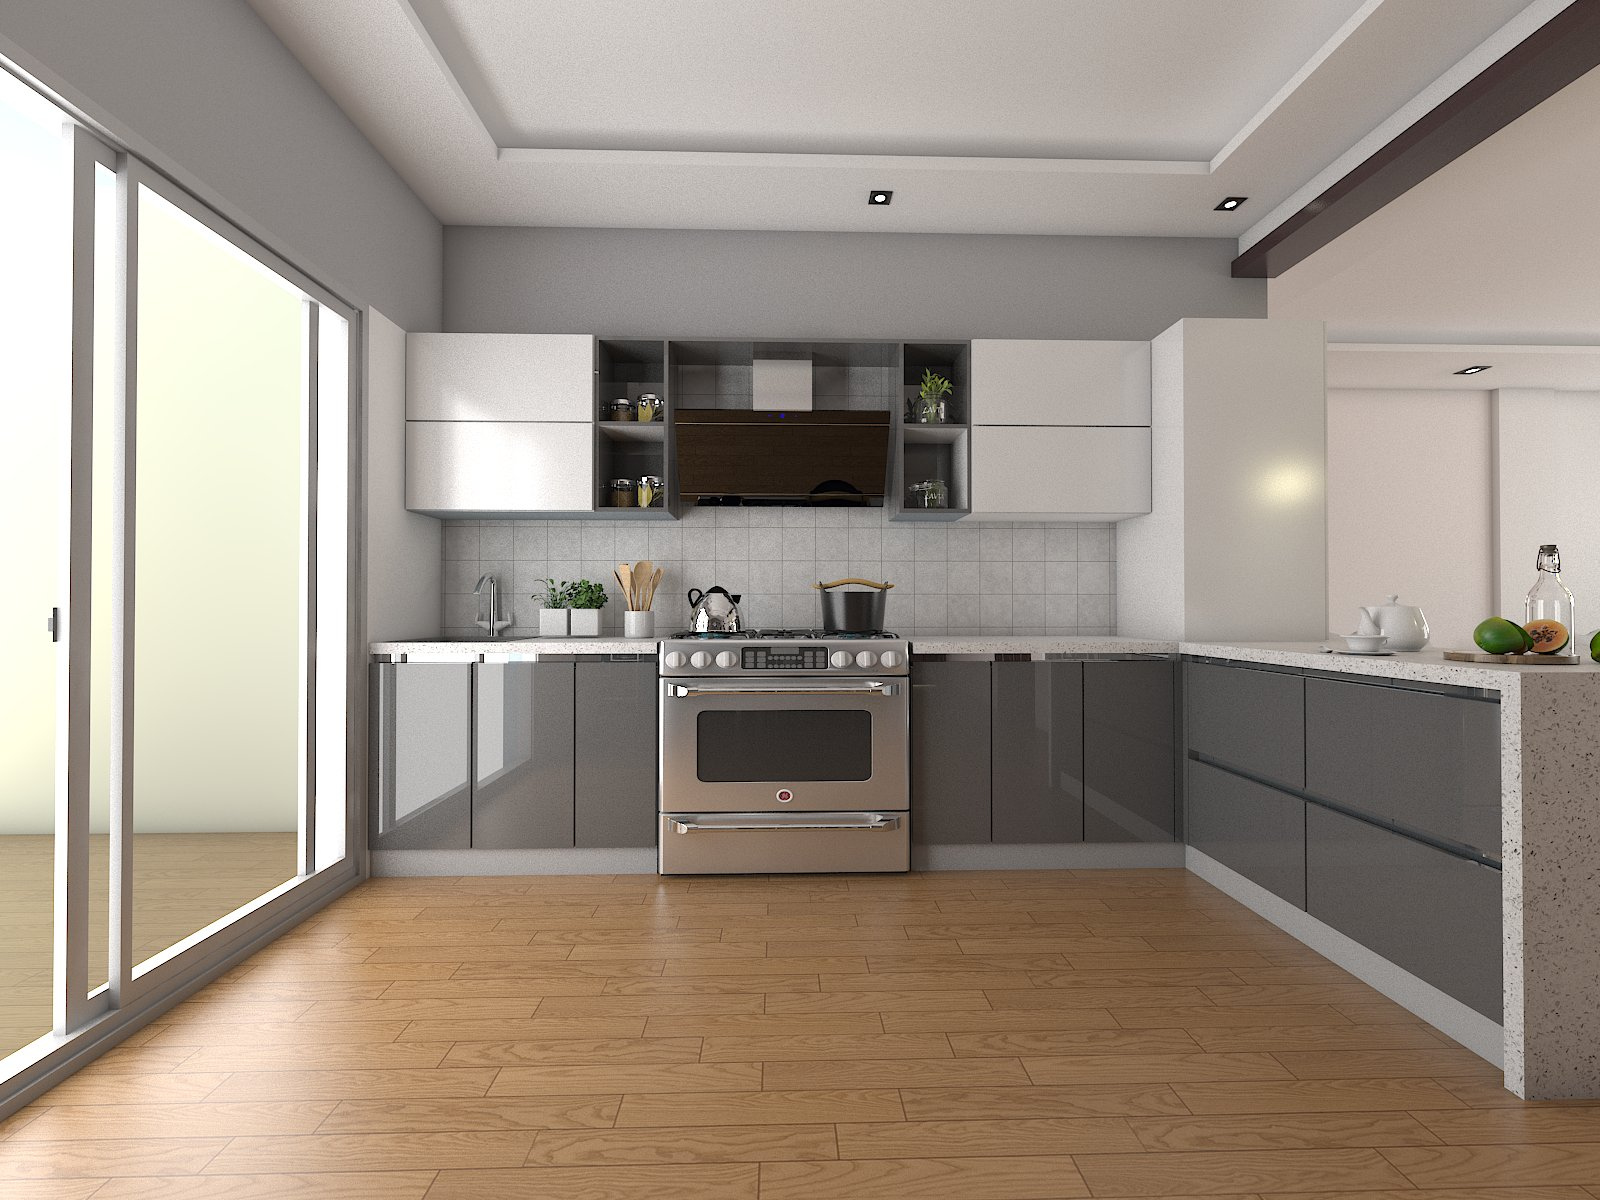 Veeteecucina The Best Interior Designing Company In Bangalore